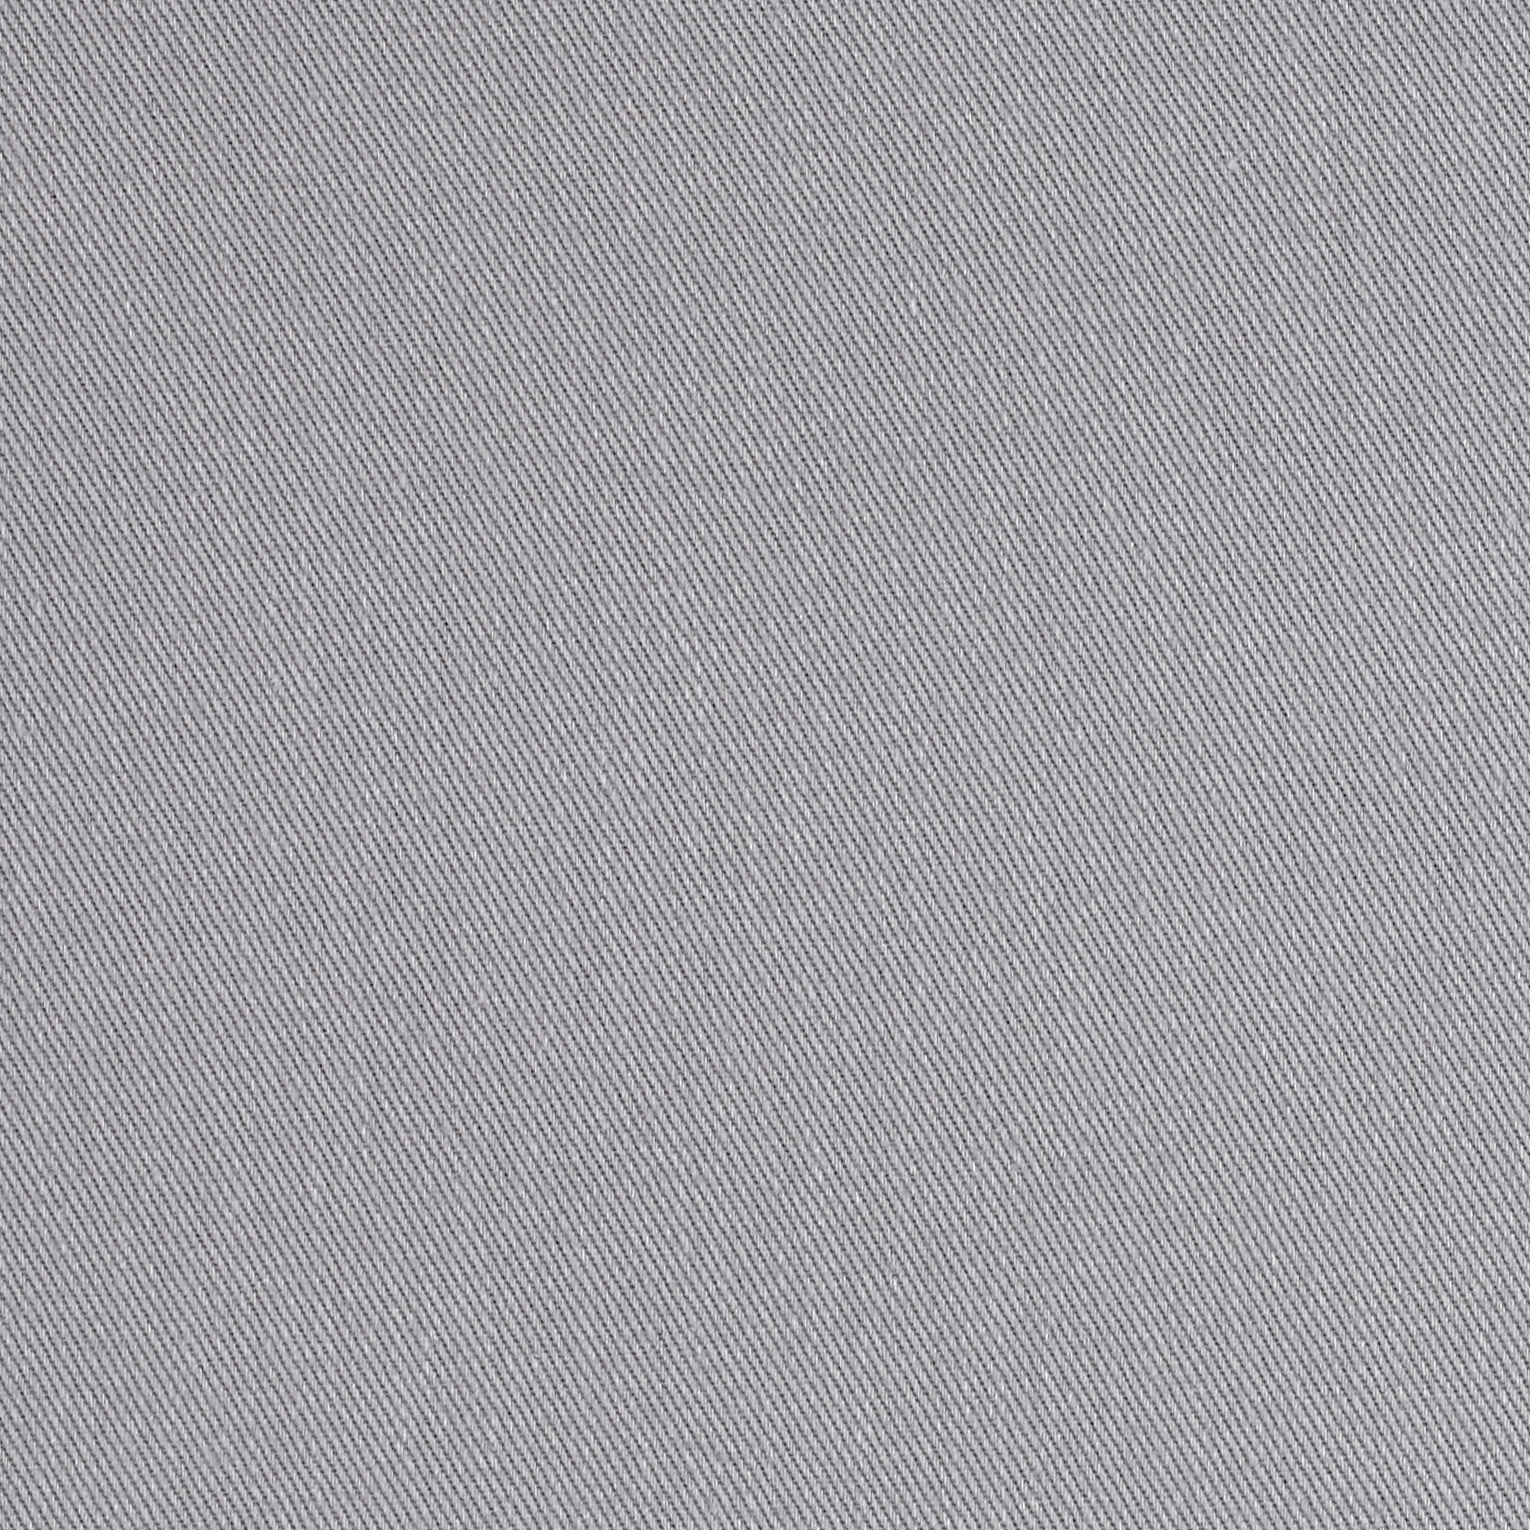 Sanded/Brushed Twill Cloud Fabric by Carr in USA